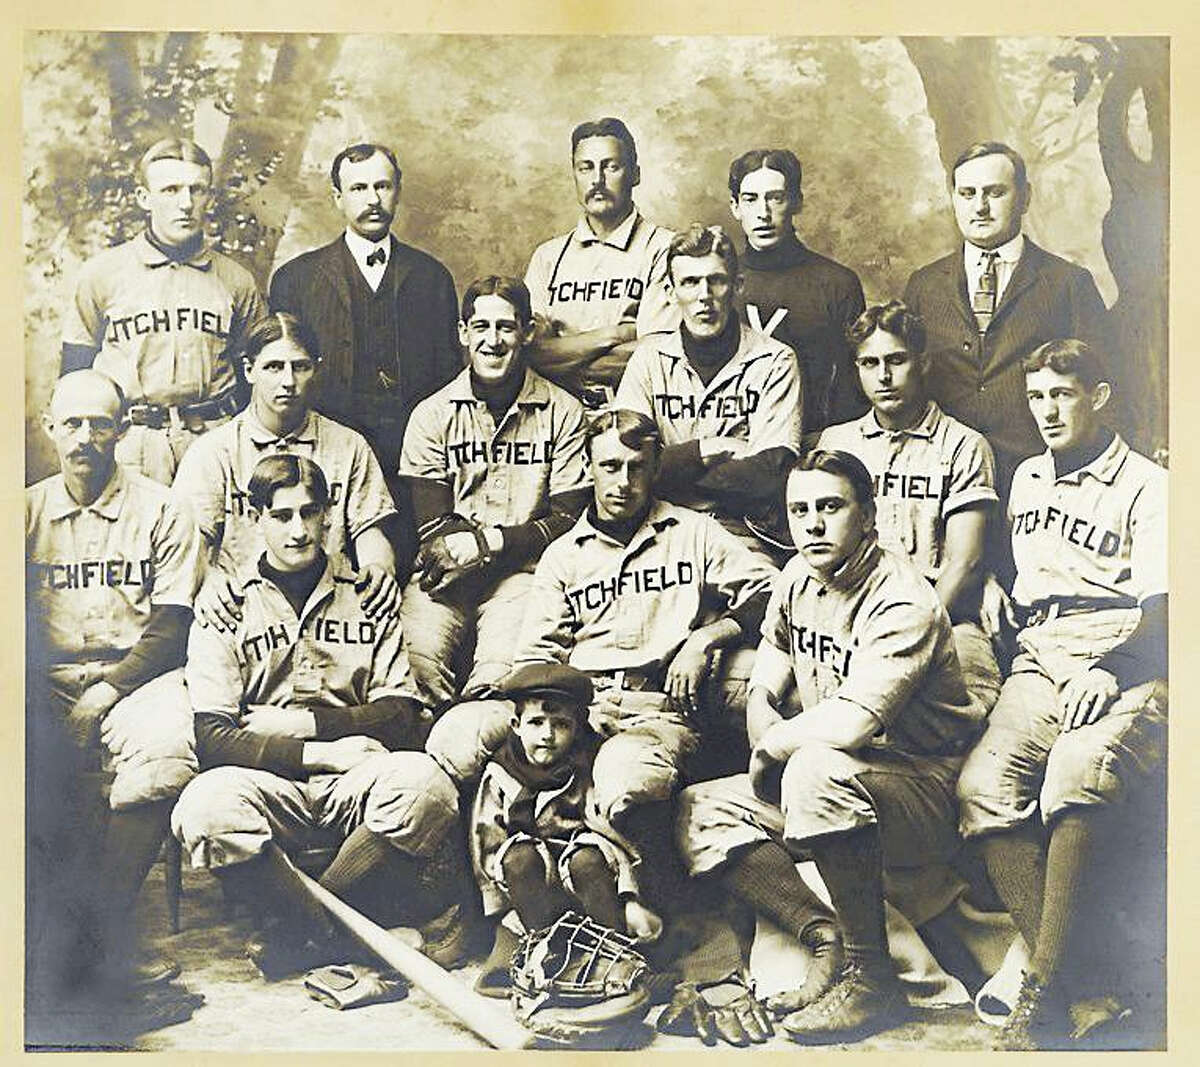 Contributed photoLitchfield's baseball team photographs are on display in the Litchfield Historical Society's new exhibition, America's Pastimes: Sports and Recreation in Litchfield, which opens April 15.